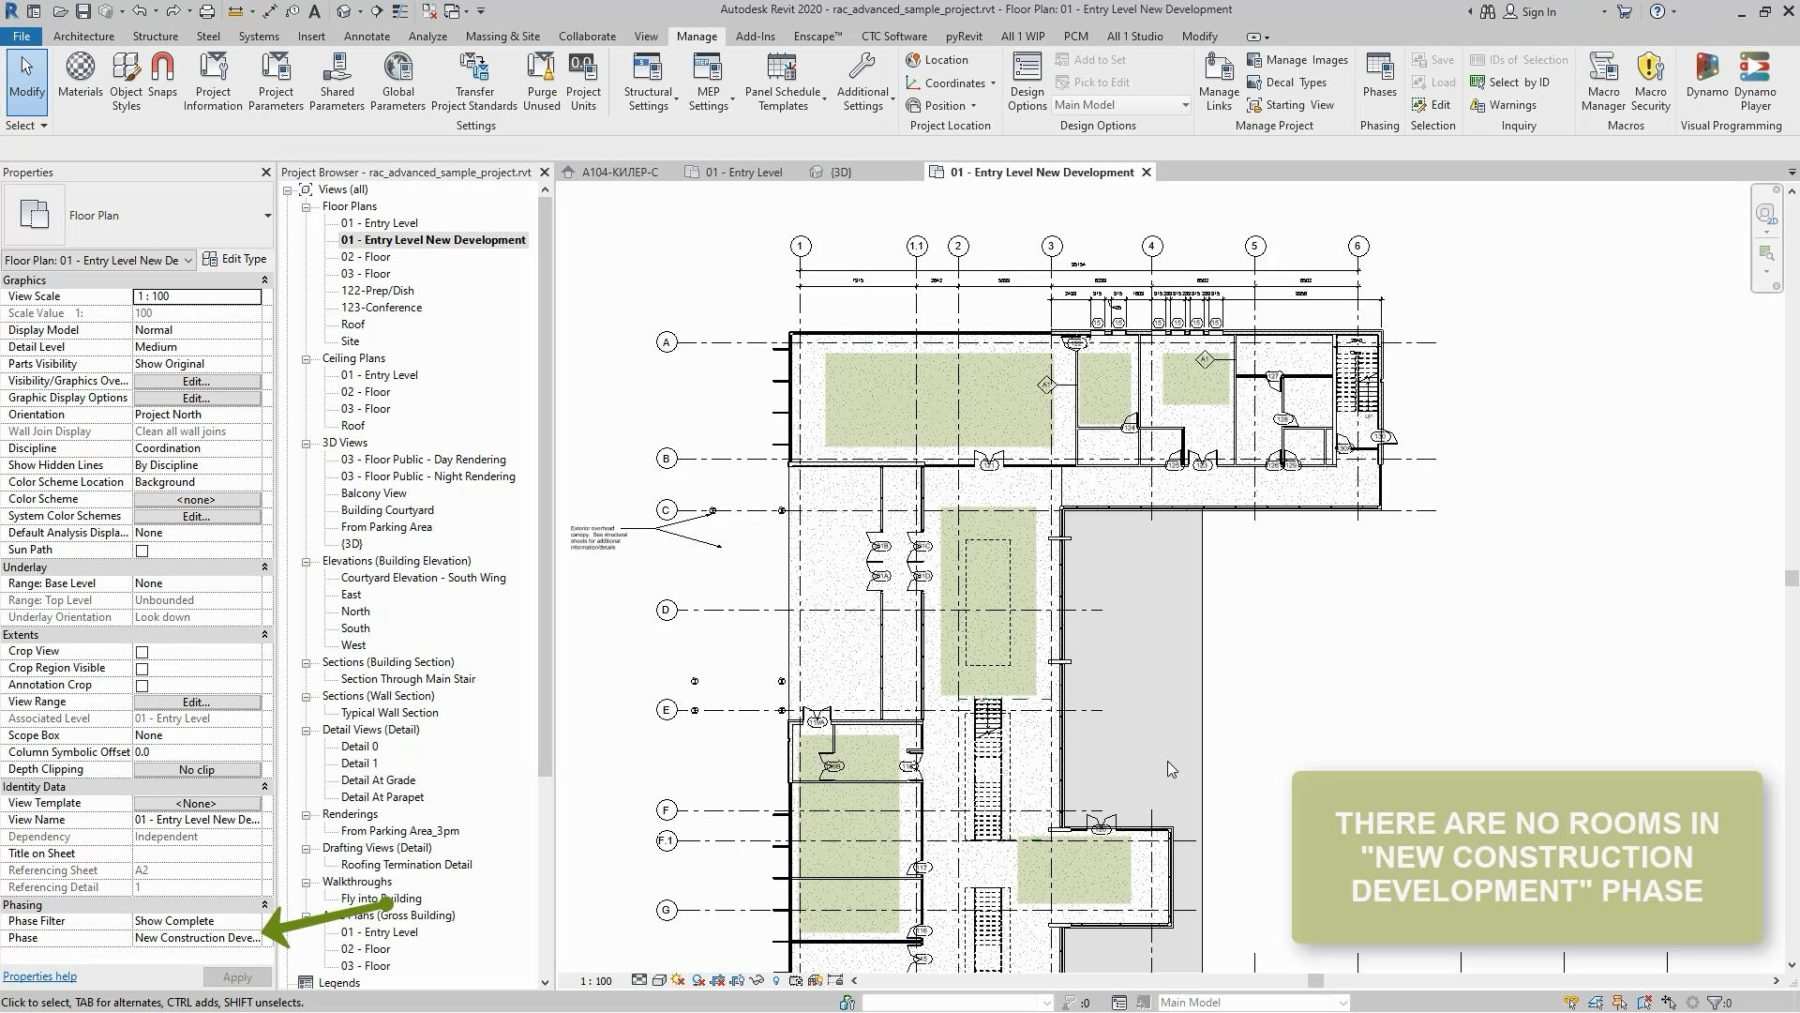 Revit Transfer Rooms From Phase